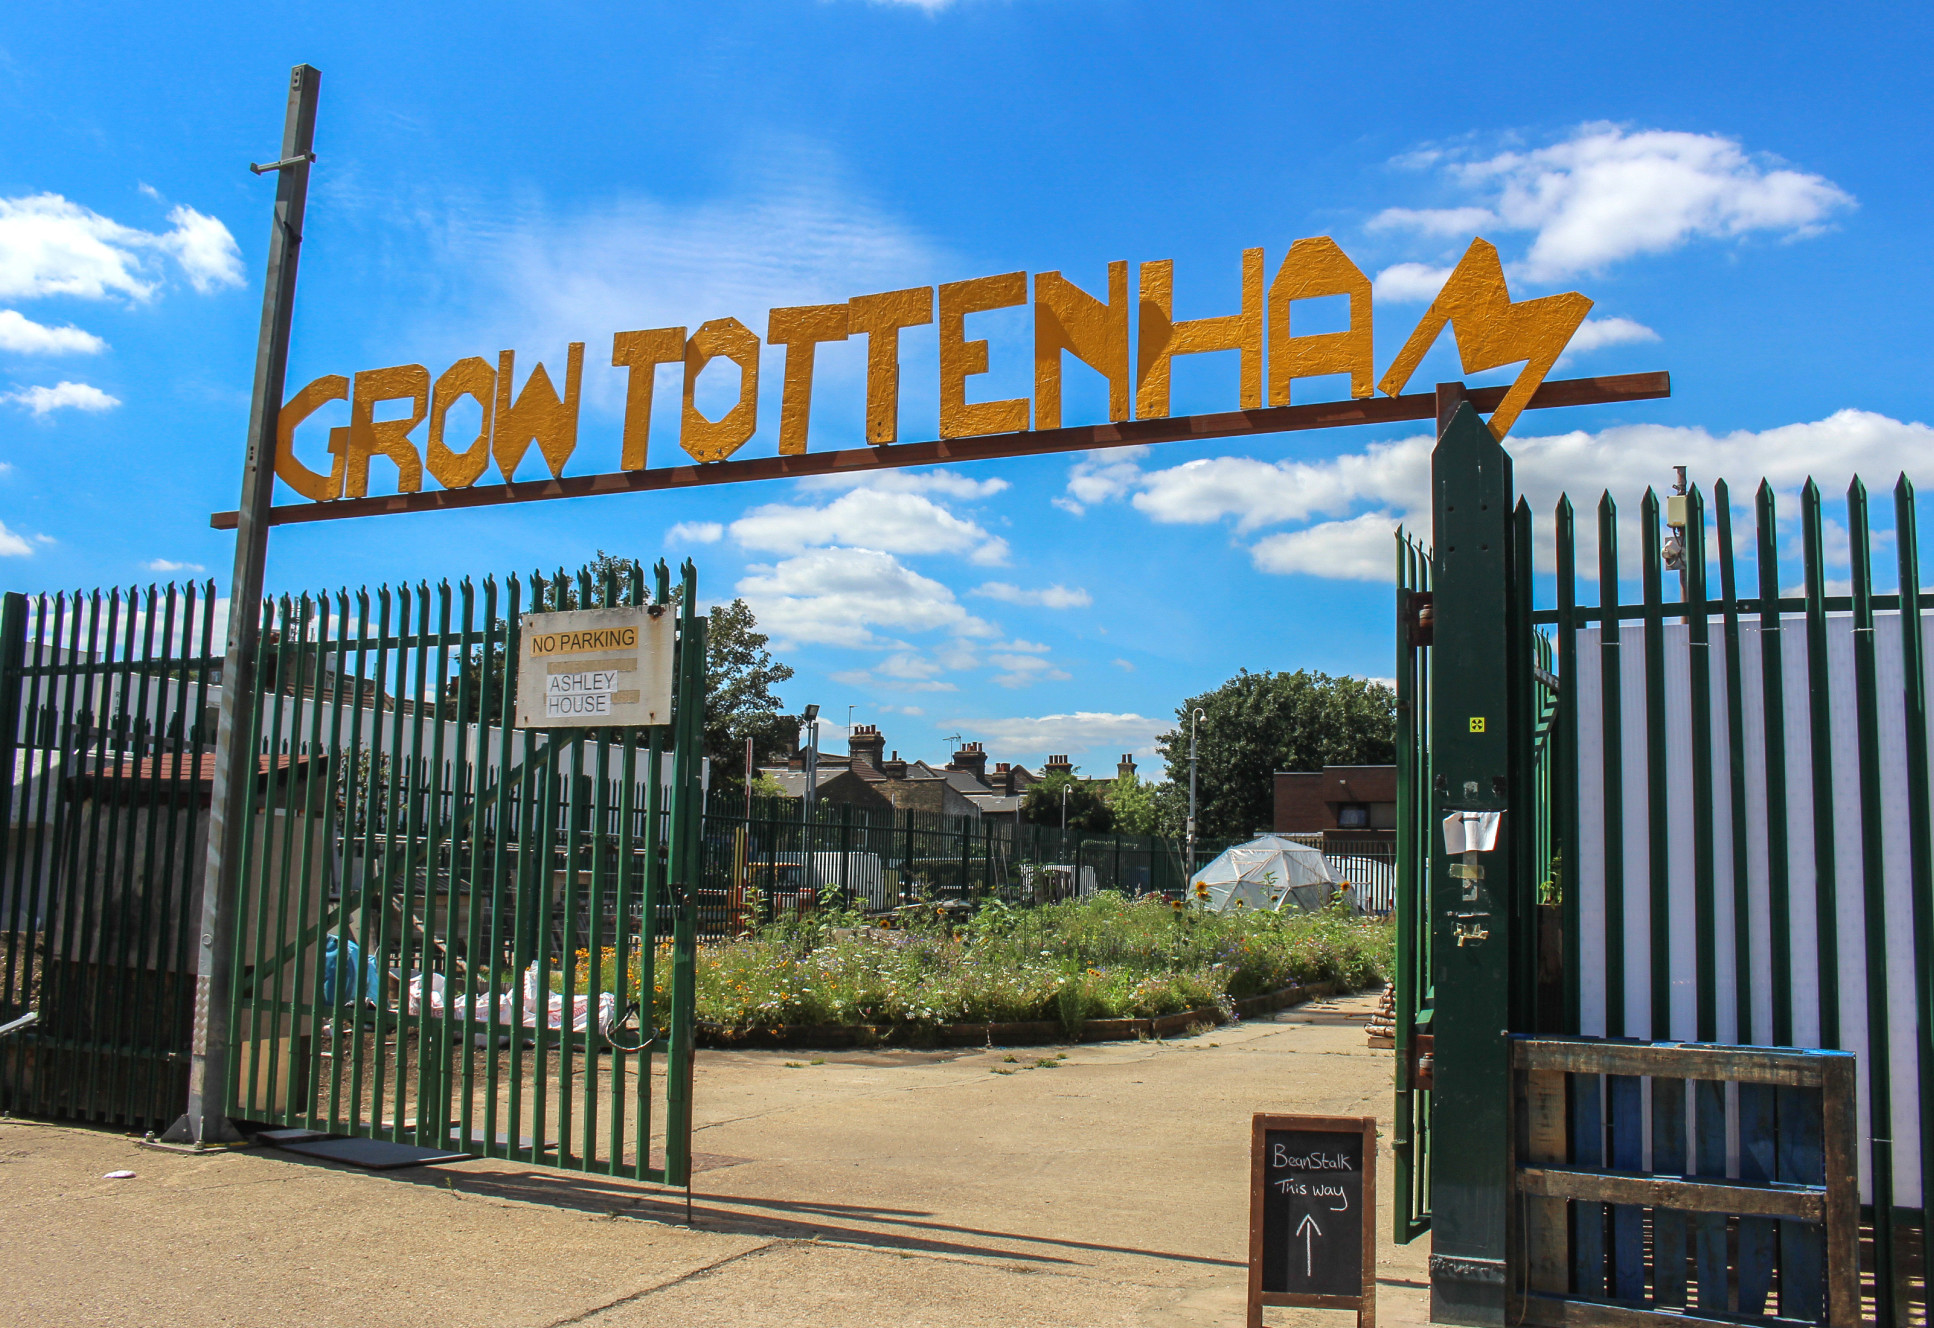 Sign over a fence that read 'Grow Tottenham'